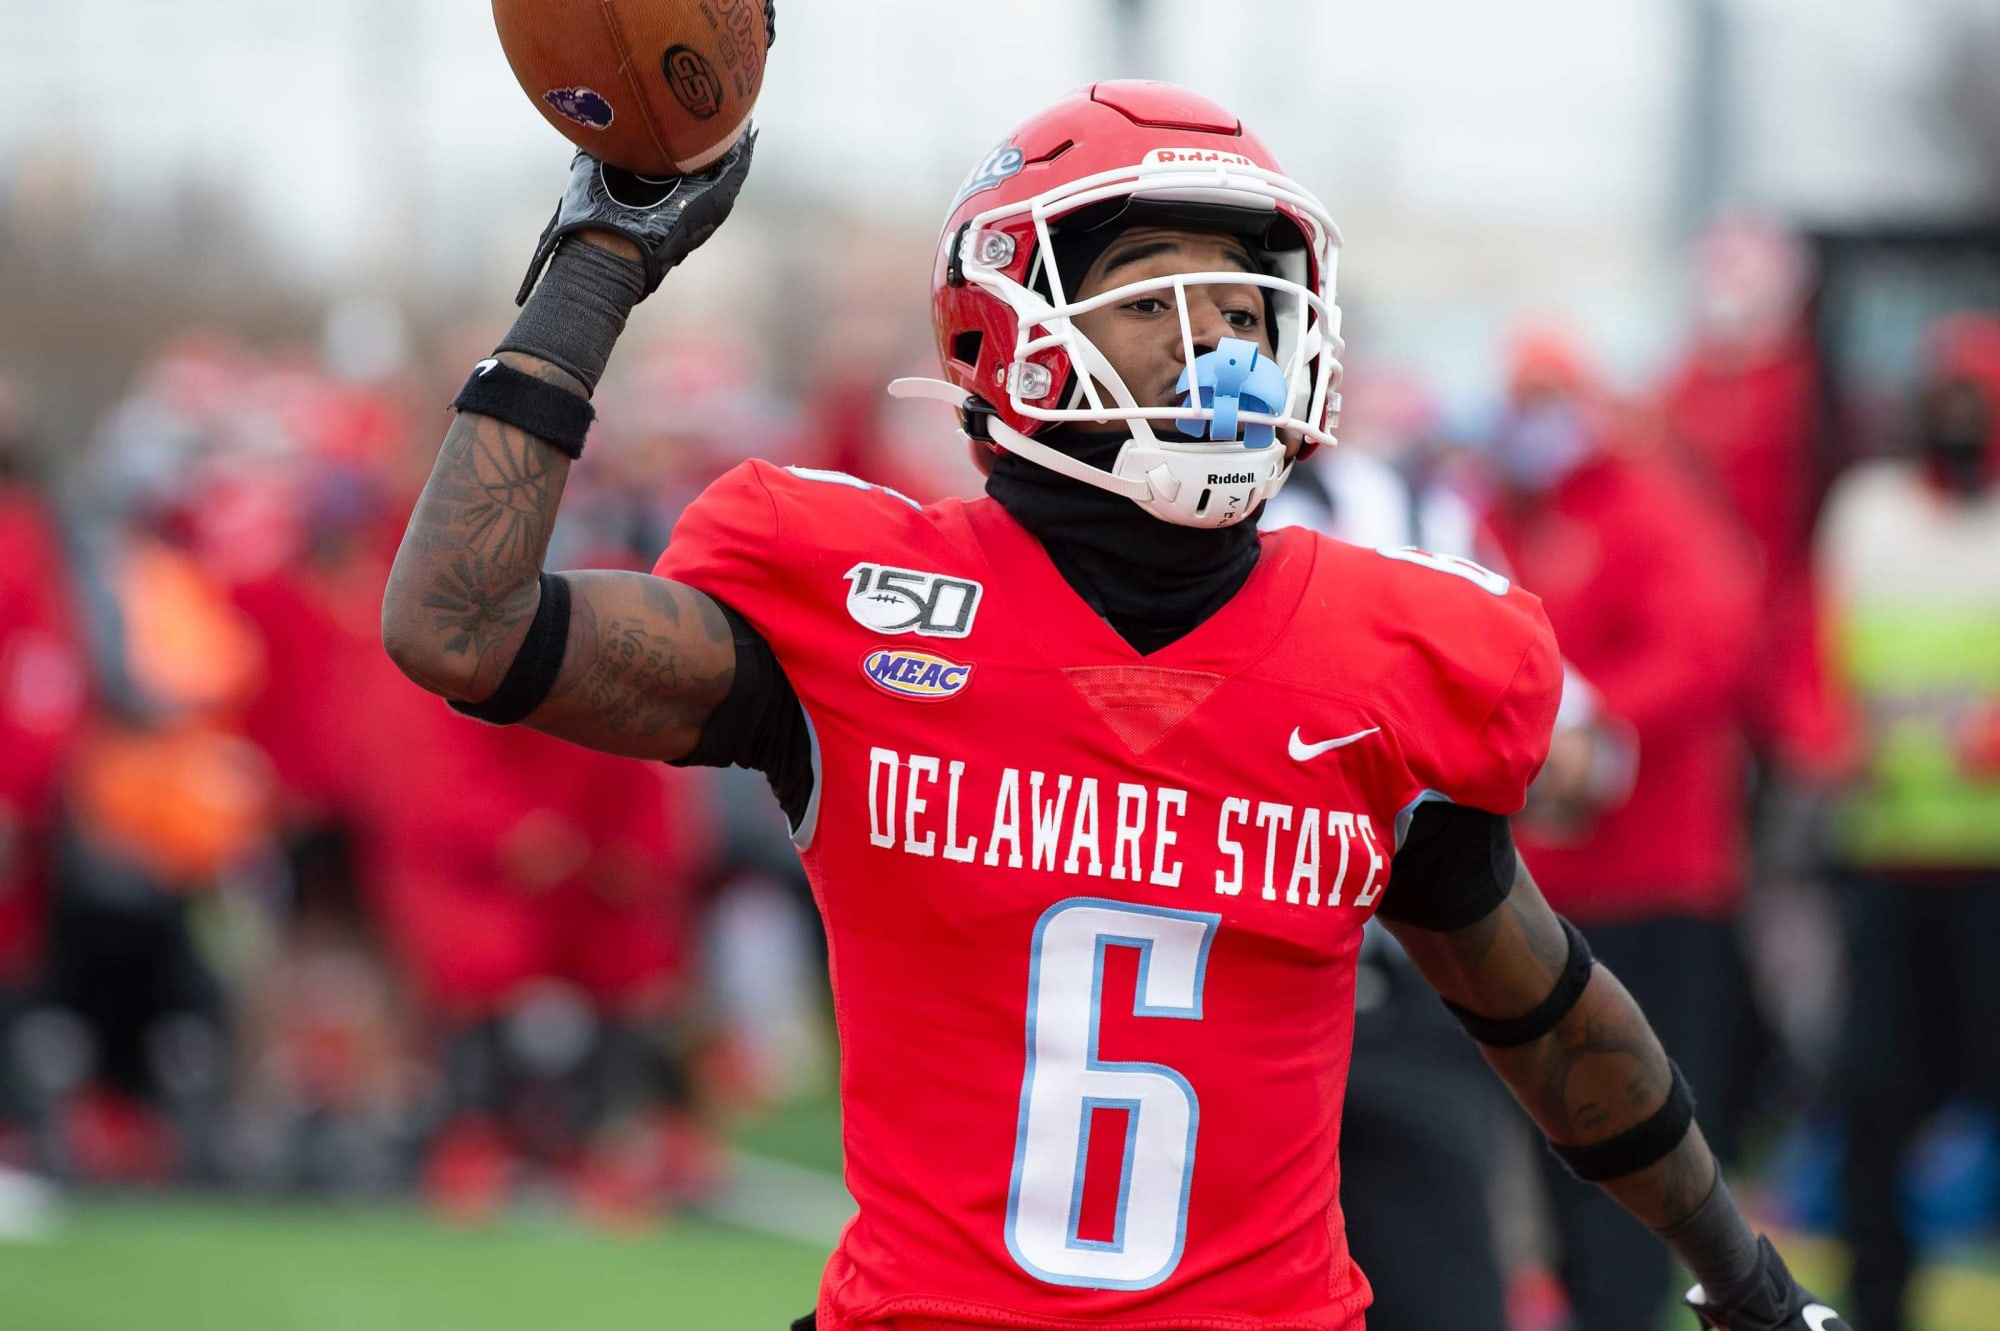 HBCU Football: Delaware State football dominated in Route 1 Rivalry